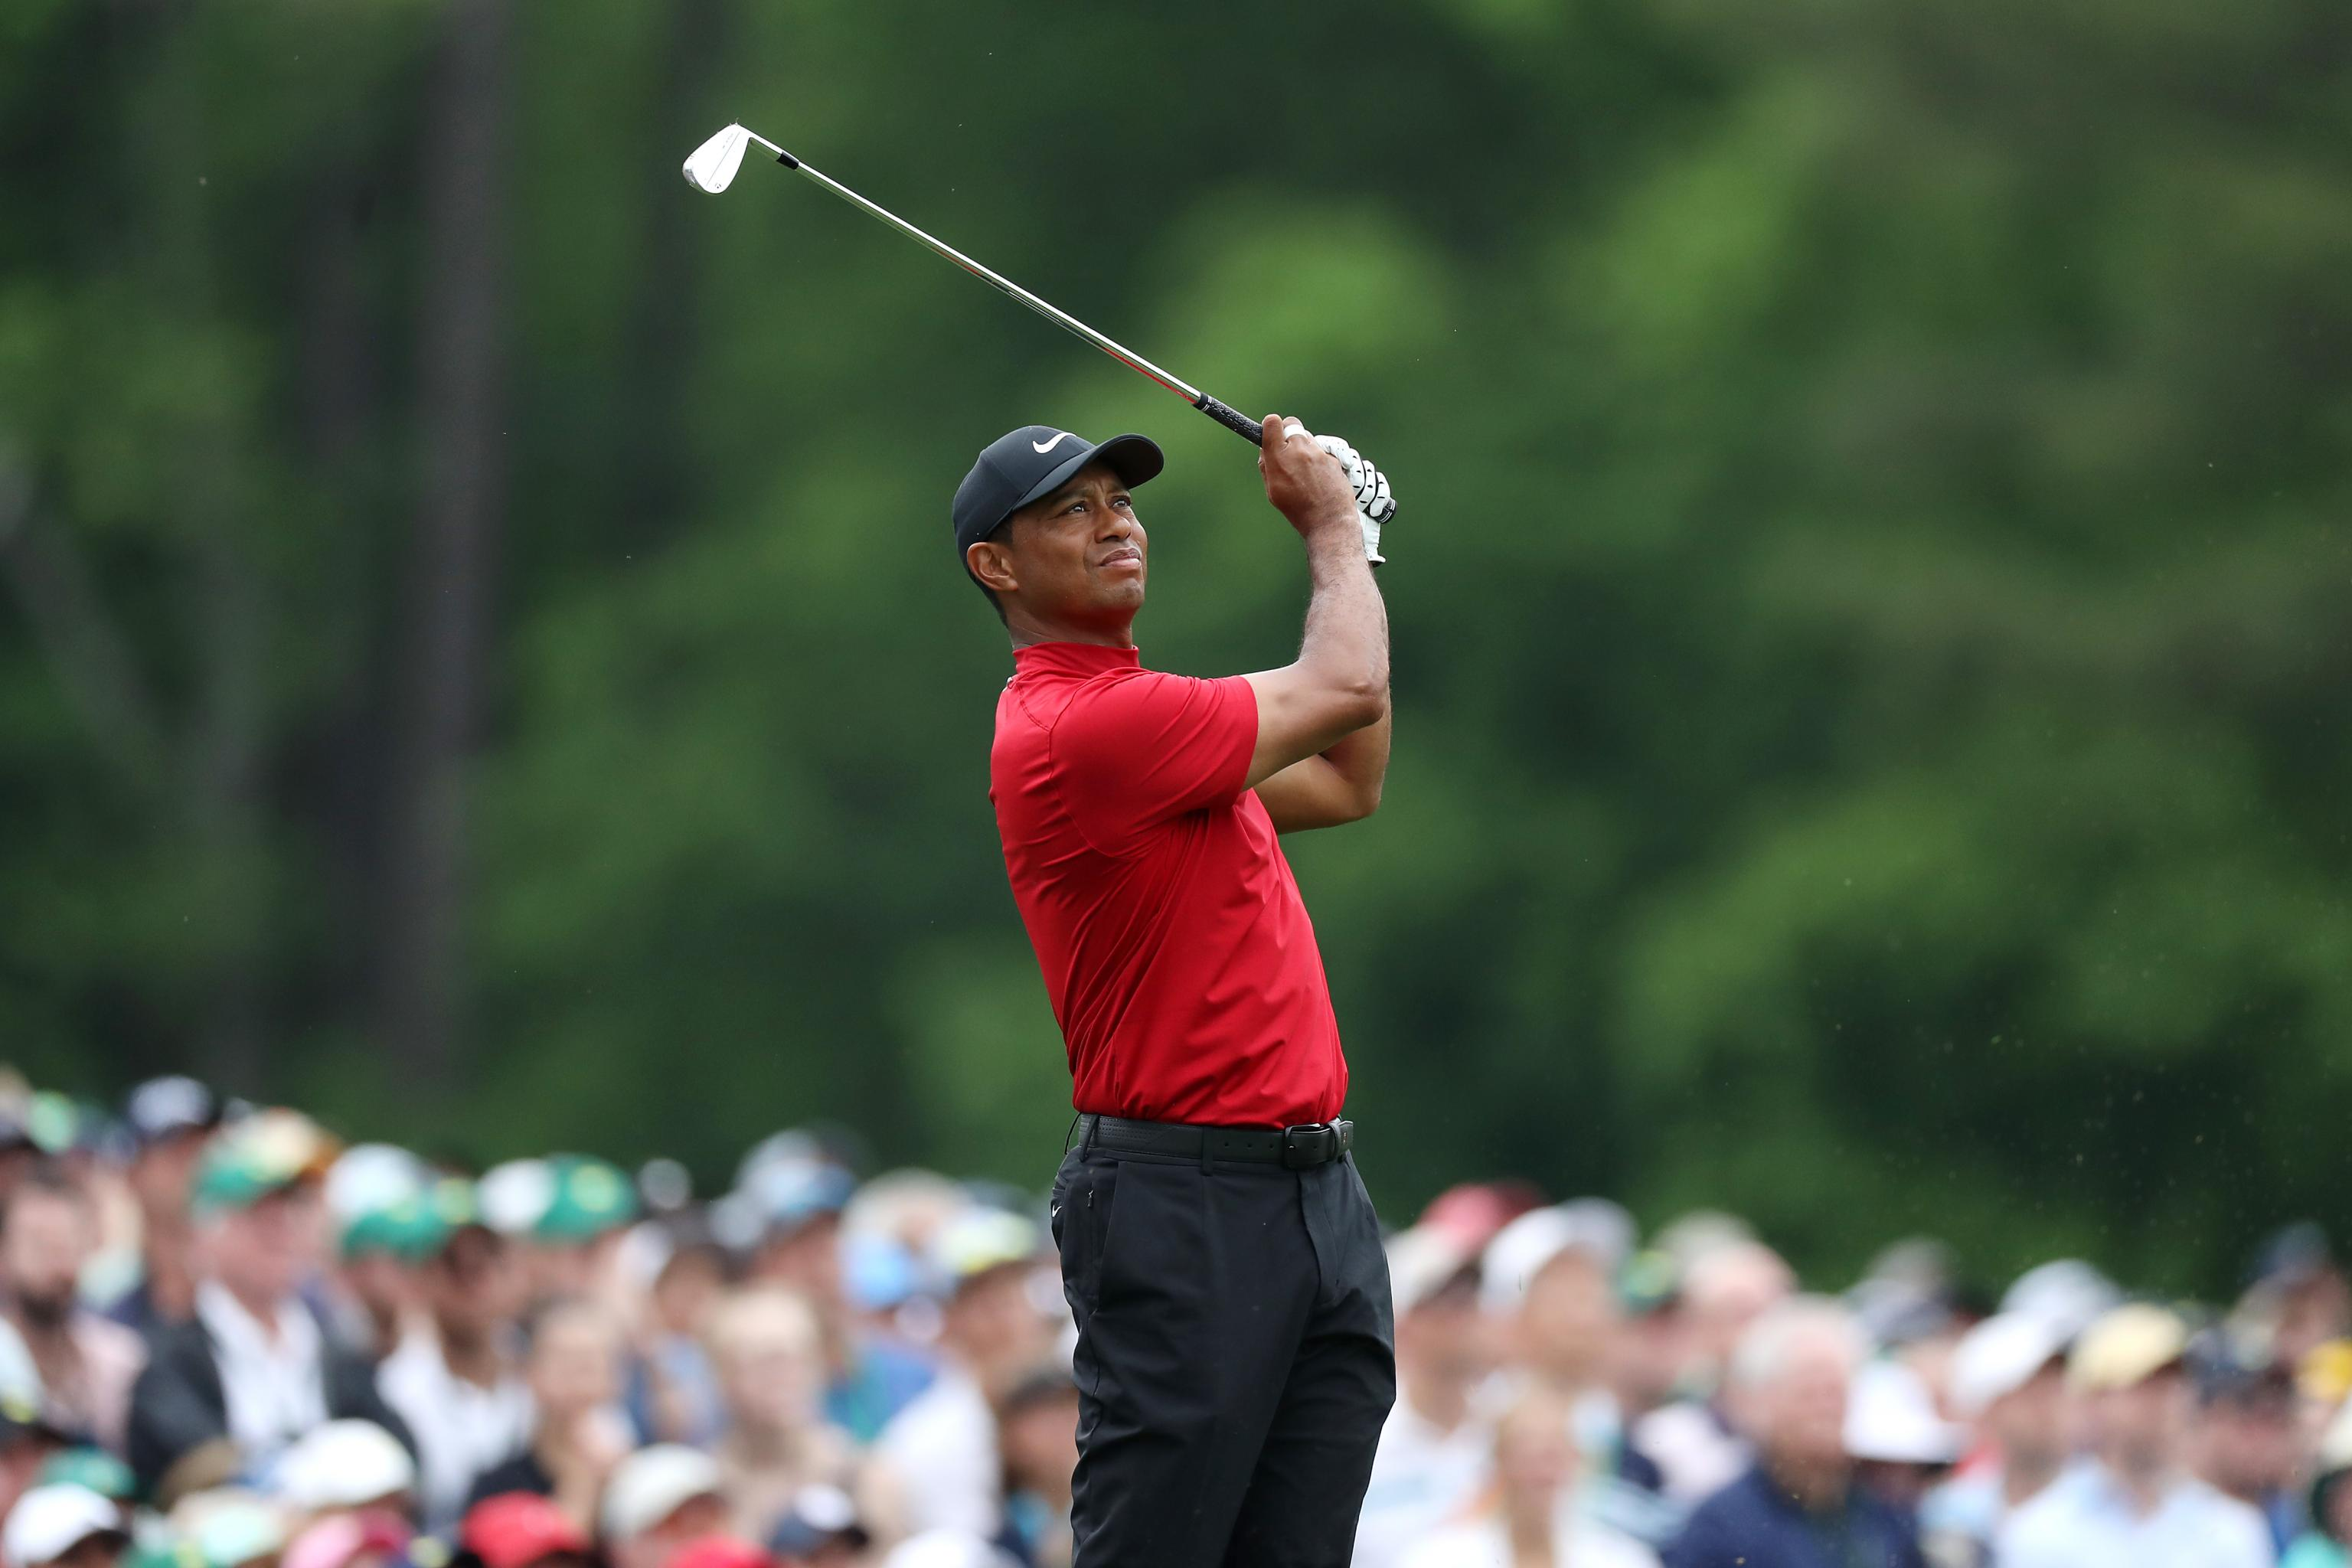 Tiger Woods Wins Dramatic 2019 Masters for His 1st Major Win in Over 10  Years | Bleacher Report | Latest News, Videos and Highlights